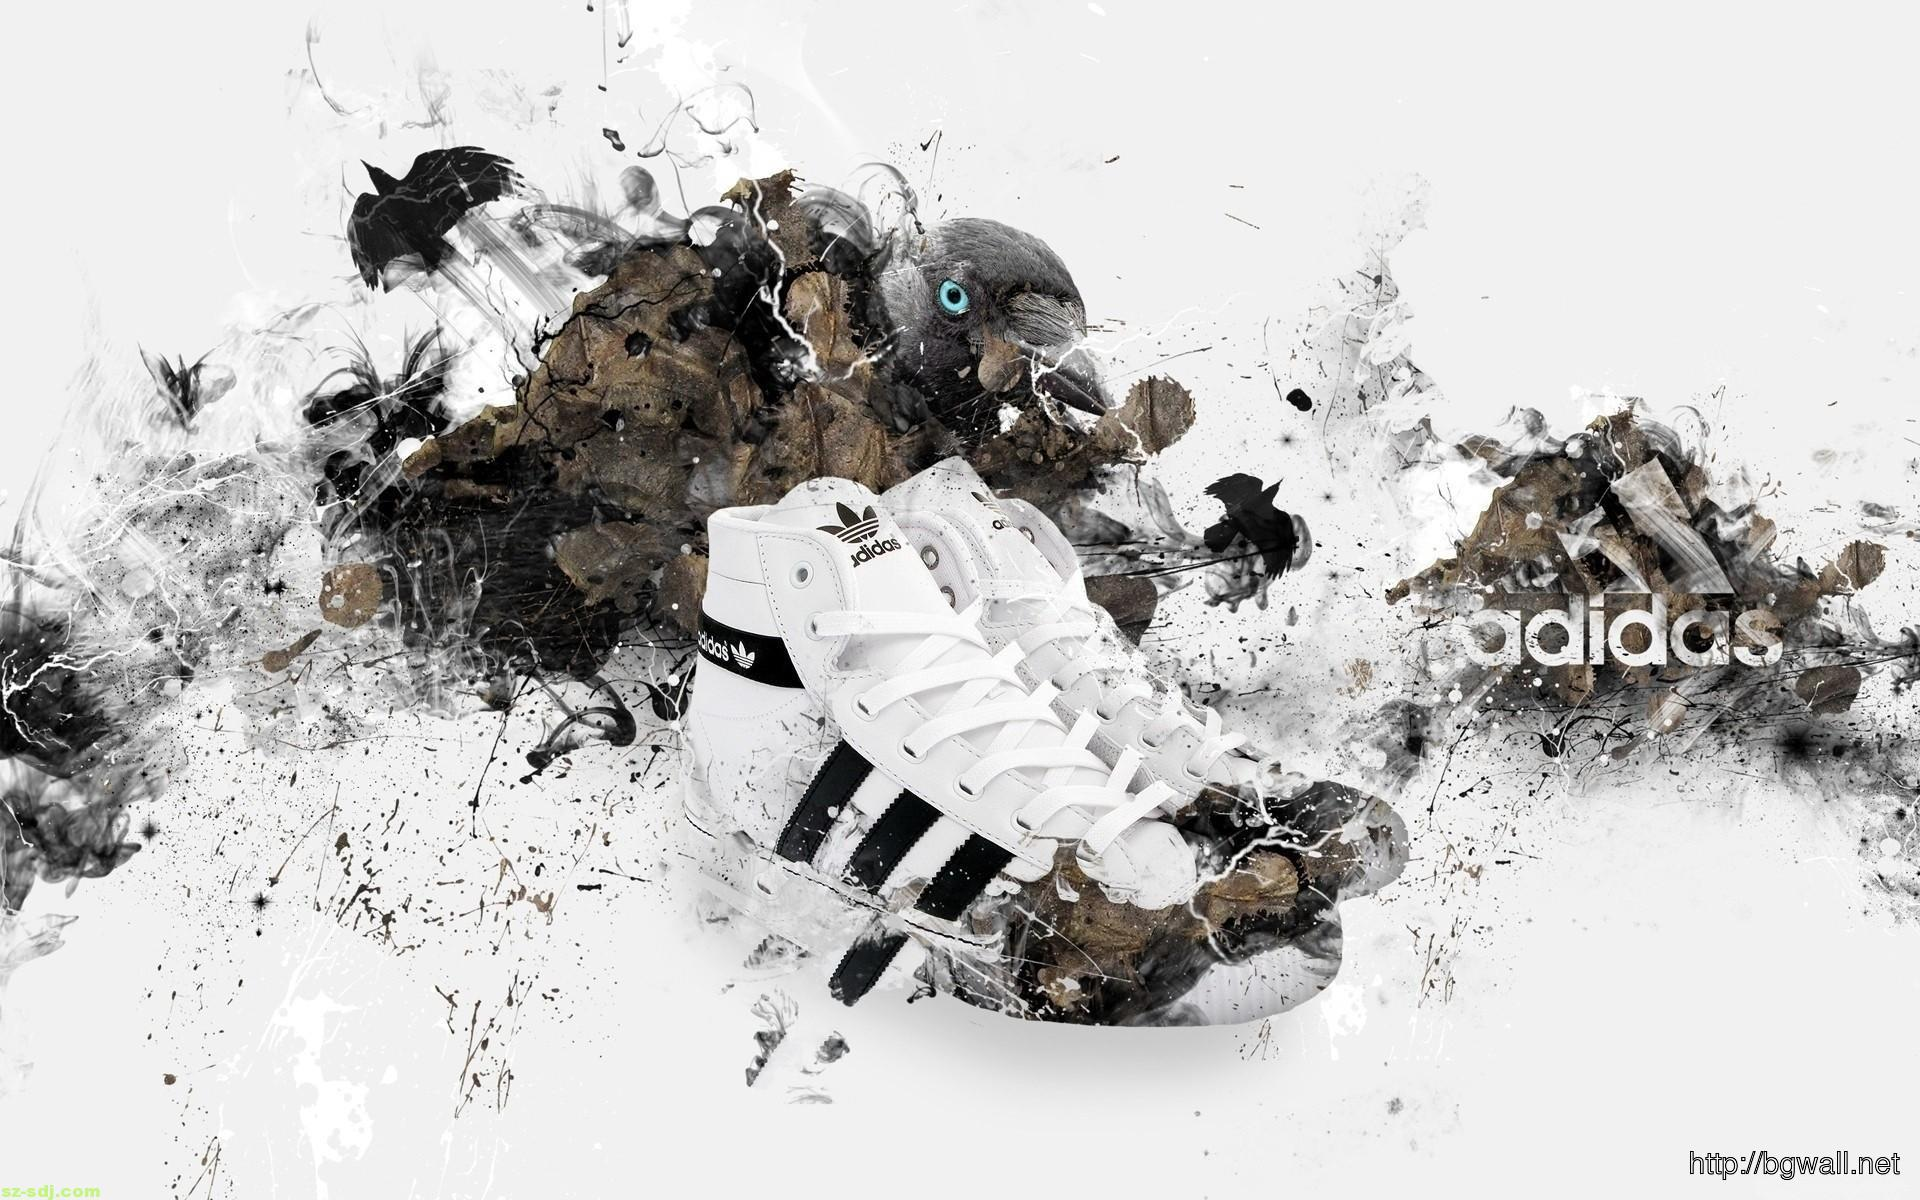 Adidas Logo Shoes Sports Wallpaper Background Wallpaper HD 1920x1200